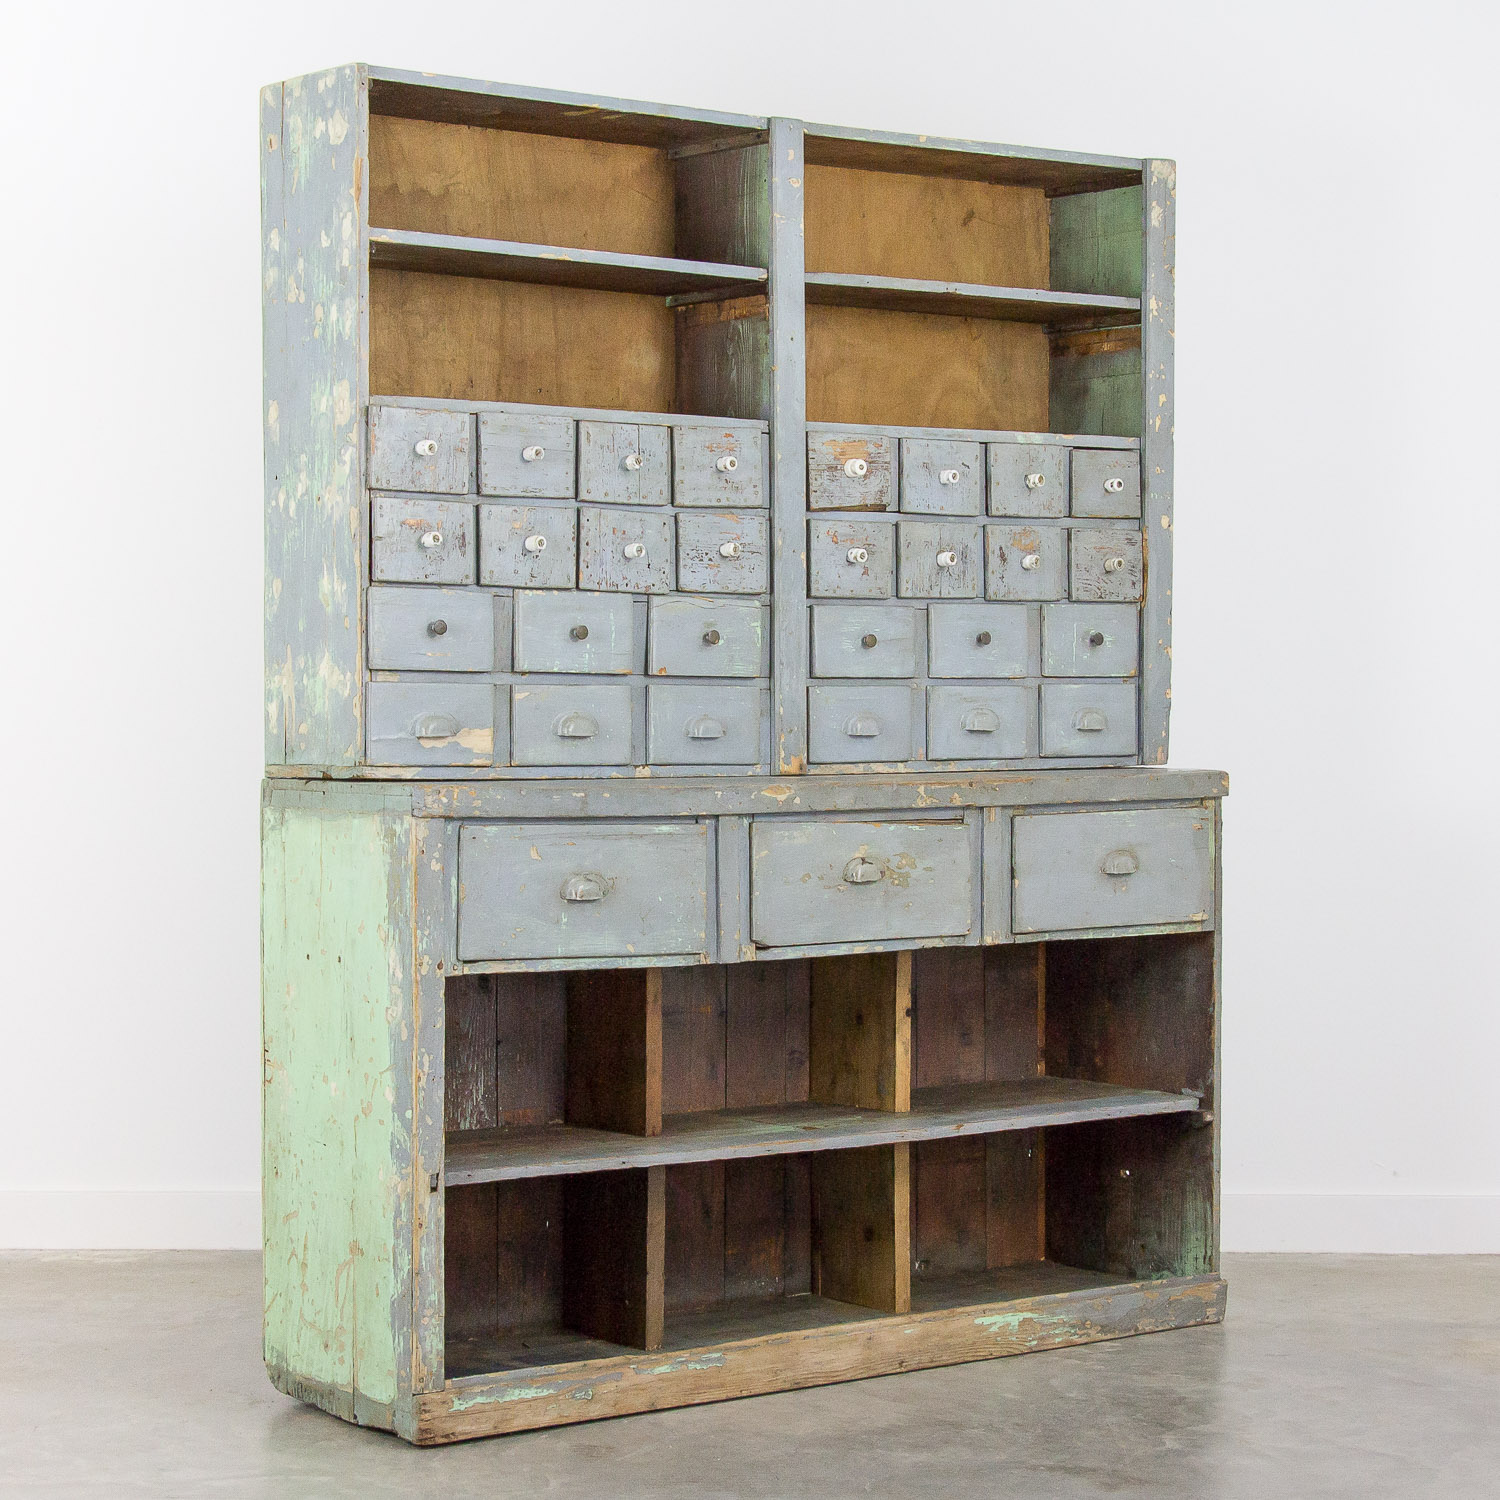 Industrial workplace hardware cabinet - 31 drawers